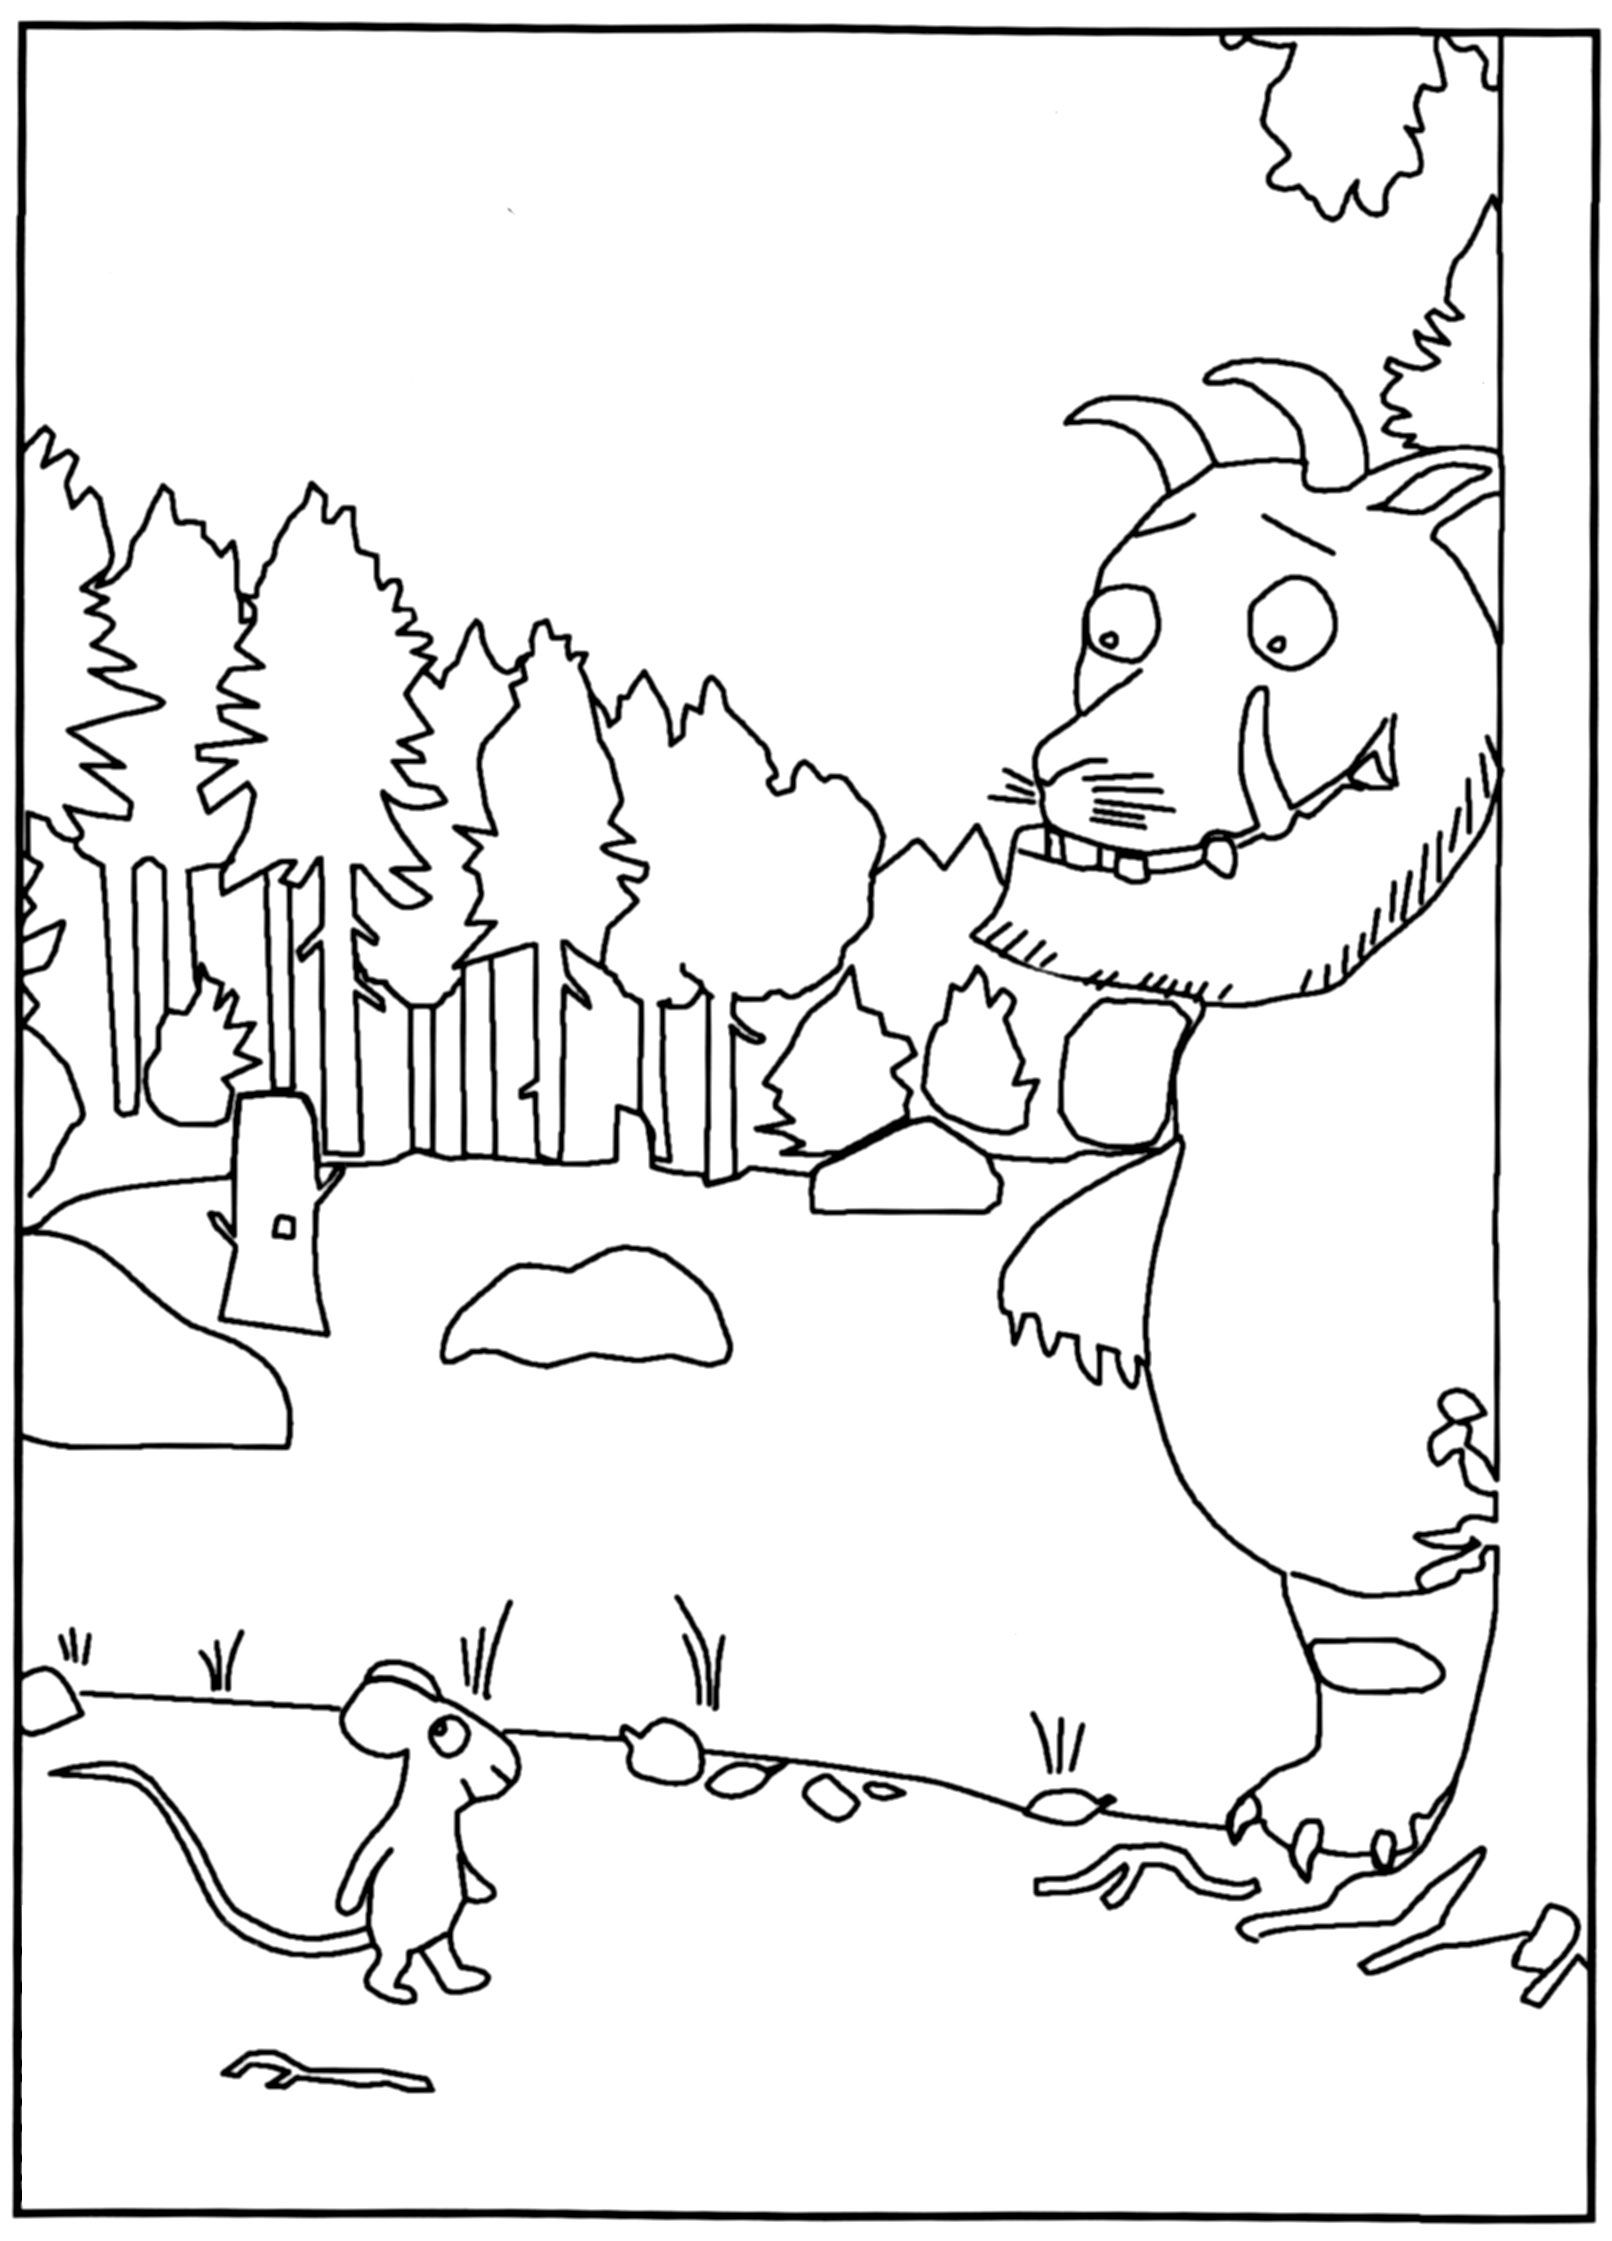 Explore the gruffalo colouring pages and more